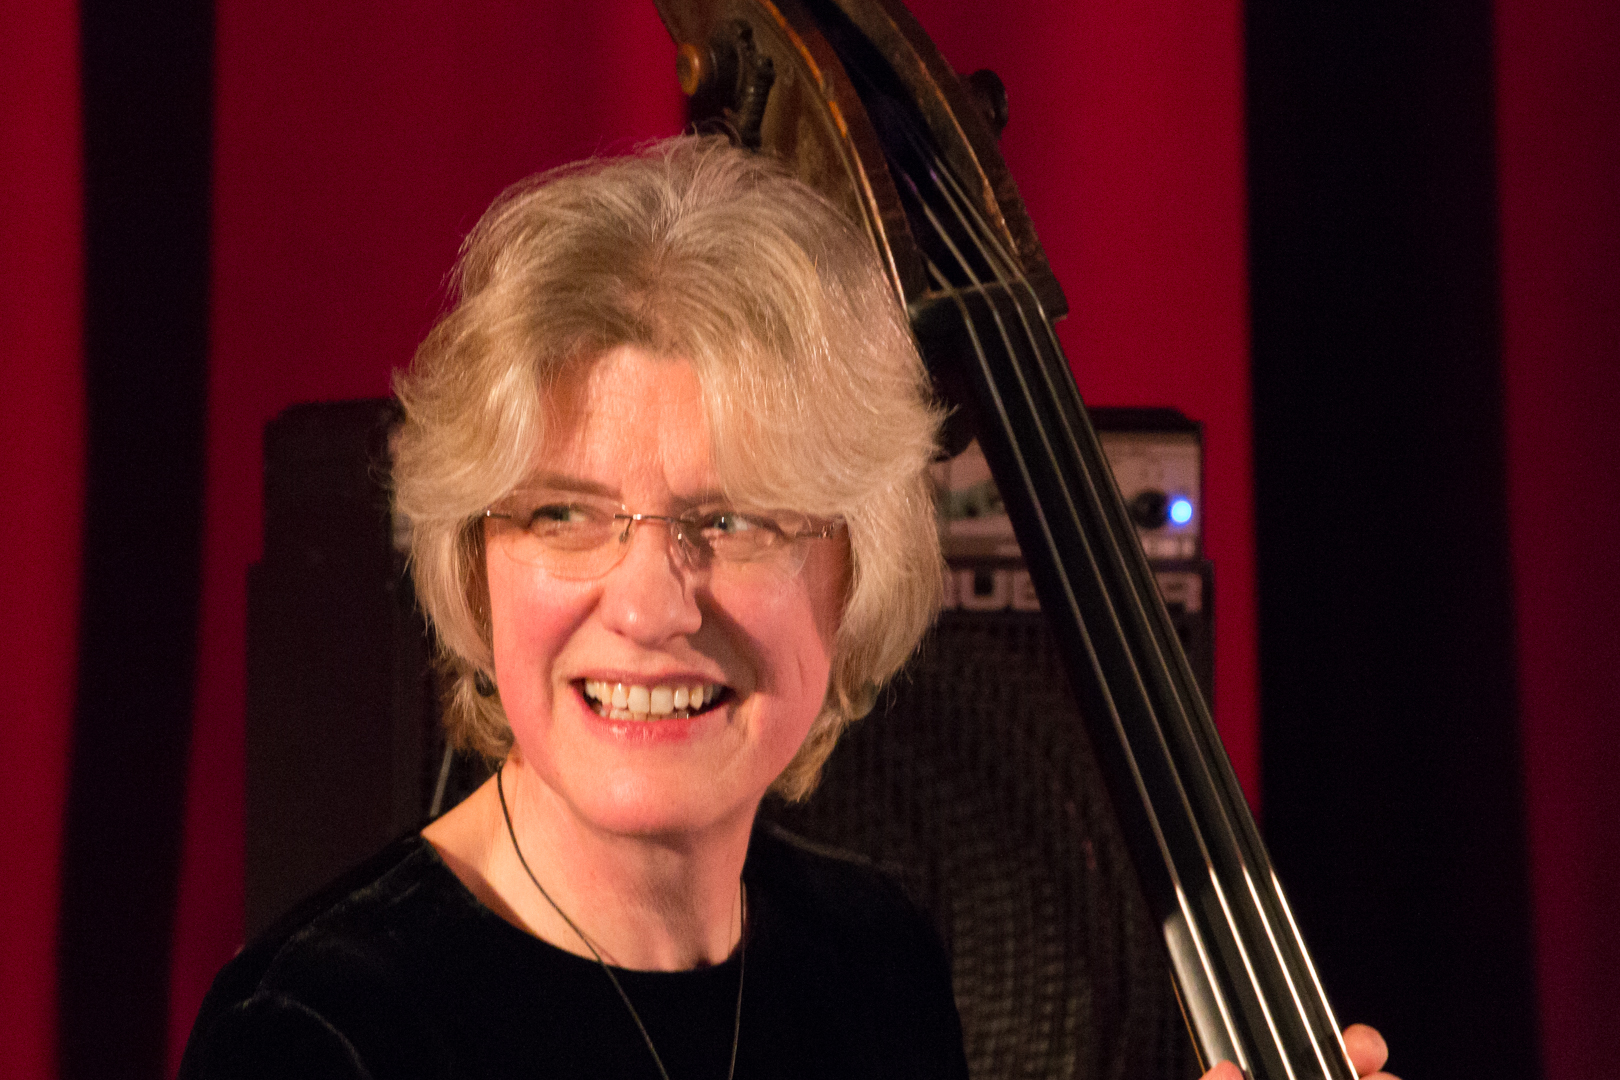 Marianne Windham performing in the Nikki Iles All Star Septet at Fleet Jazz on 19th Feb 2019.